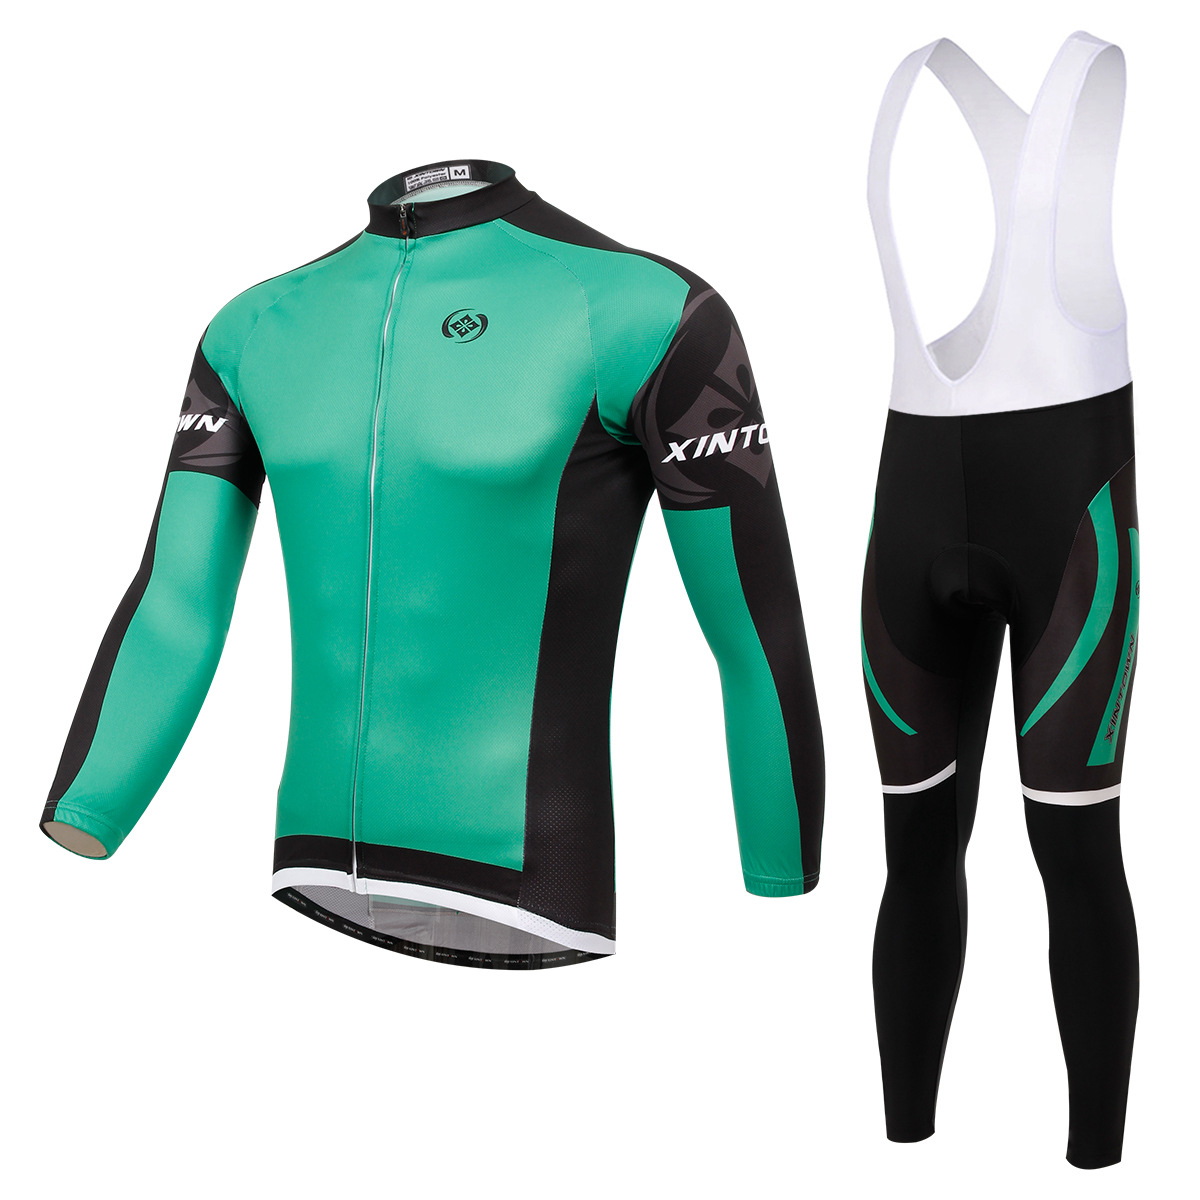 XINTOWN Dimon green bike riding jersey harness long-sleeved suit wear cycling suits fleece wind warm functional underwear